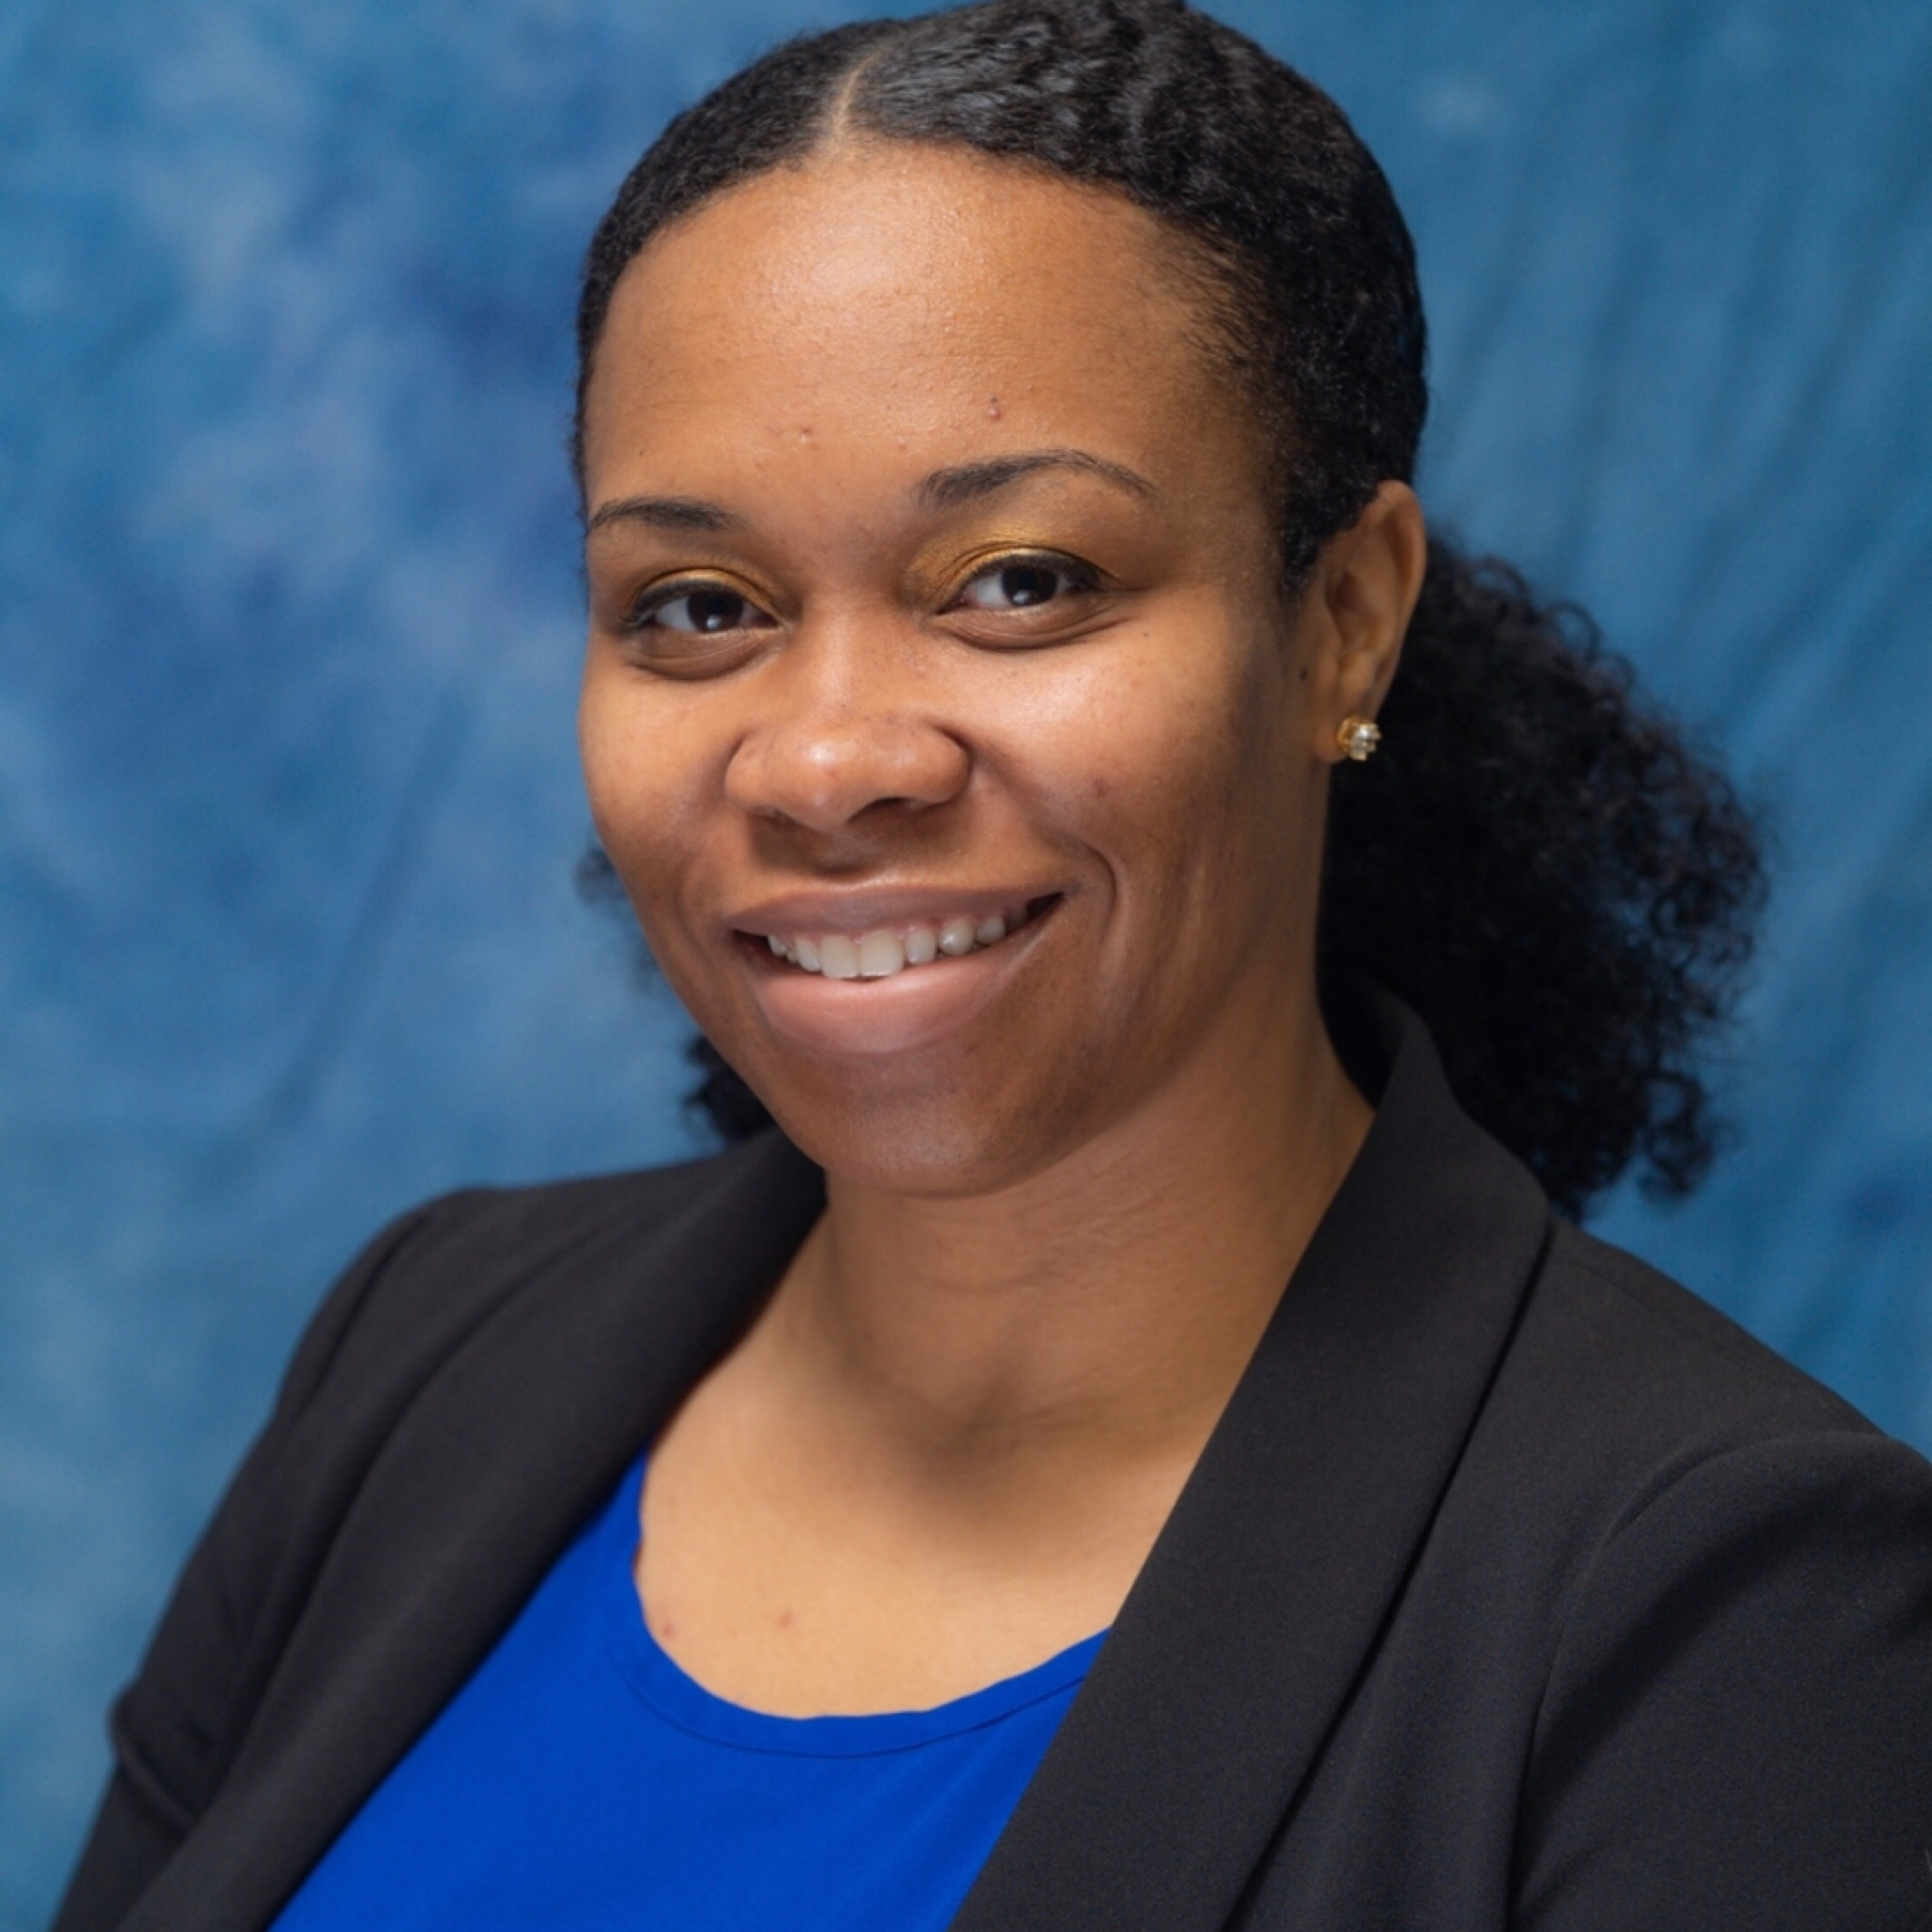 TIERRA PARSONS - License Type: MSW, LCSWOffice Address: 100 Beatties Ford Rd, Charlotte, NC 28216The Smith Cottage (Old Alumni House - Building 11)Telephone Number: (704) 378-1044Website: https://www.jcsu.edu/student/office-of-counseling-servicesSpecialties:The mission of the Office of Counseling Services of Johnson C. Smith University is to promote and facilitate the interest, wellness, and growth of all JCSU students. The Office of Counseling Services strives to encourage student involvement on campus and in the community by enhancing self-awareness, and aiming to inspire the individual and collective leadership skills of all students. To accomplish this mission, the Office of Counseling Services offers individual and group counseling, workshops, support services, and educational materials.The Office of Counseling Services provides confidential intakes and assessments, personal counseling and referrals to appropriate resources to all enrolled students on a walk-in or appointment basis.